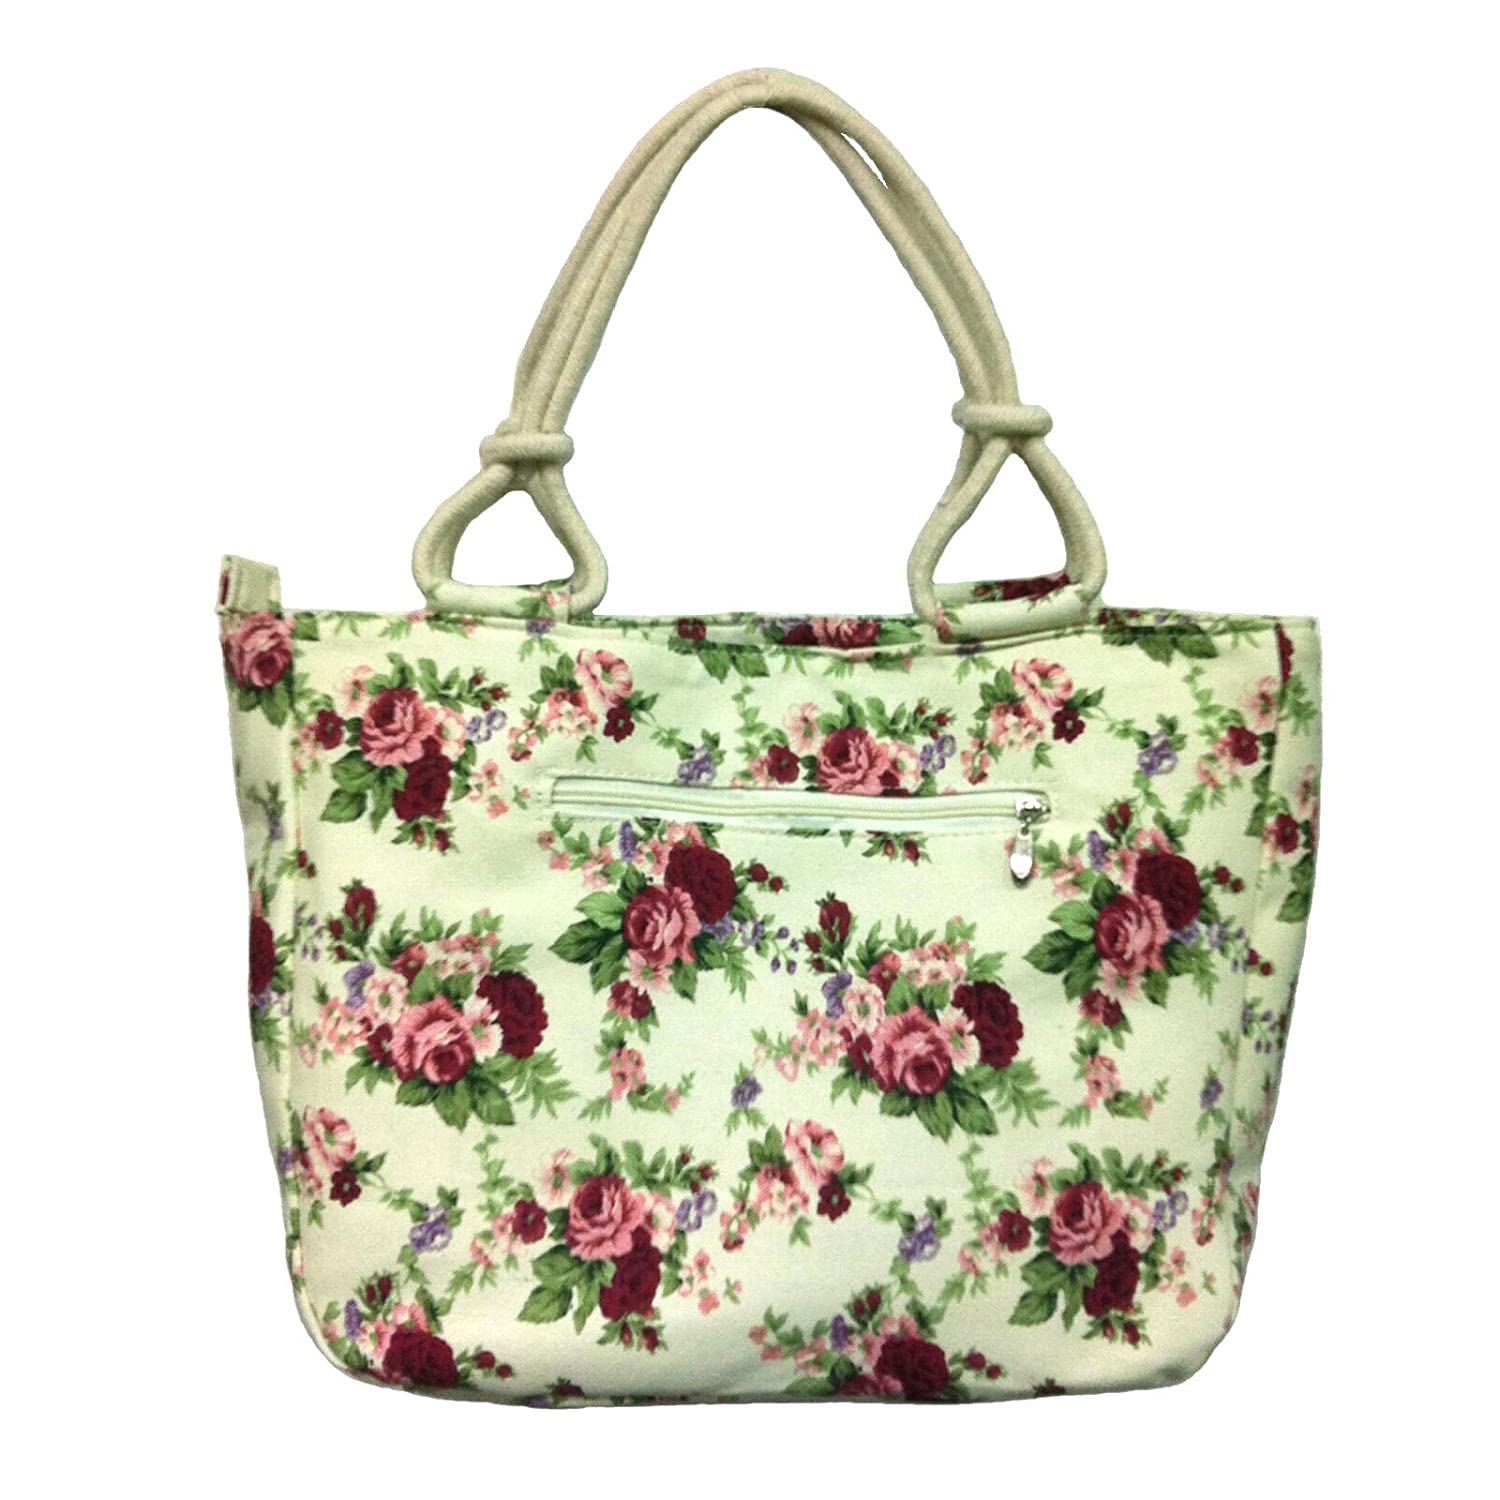 Amazon.com: Zipper Canvas Tote Bag - Red Roses Pattern: Clothing